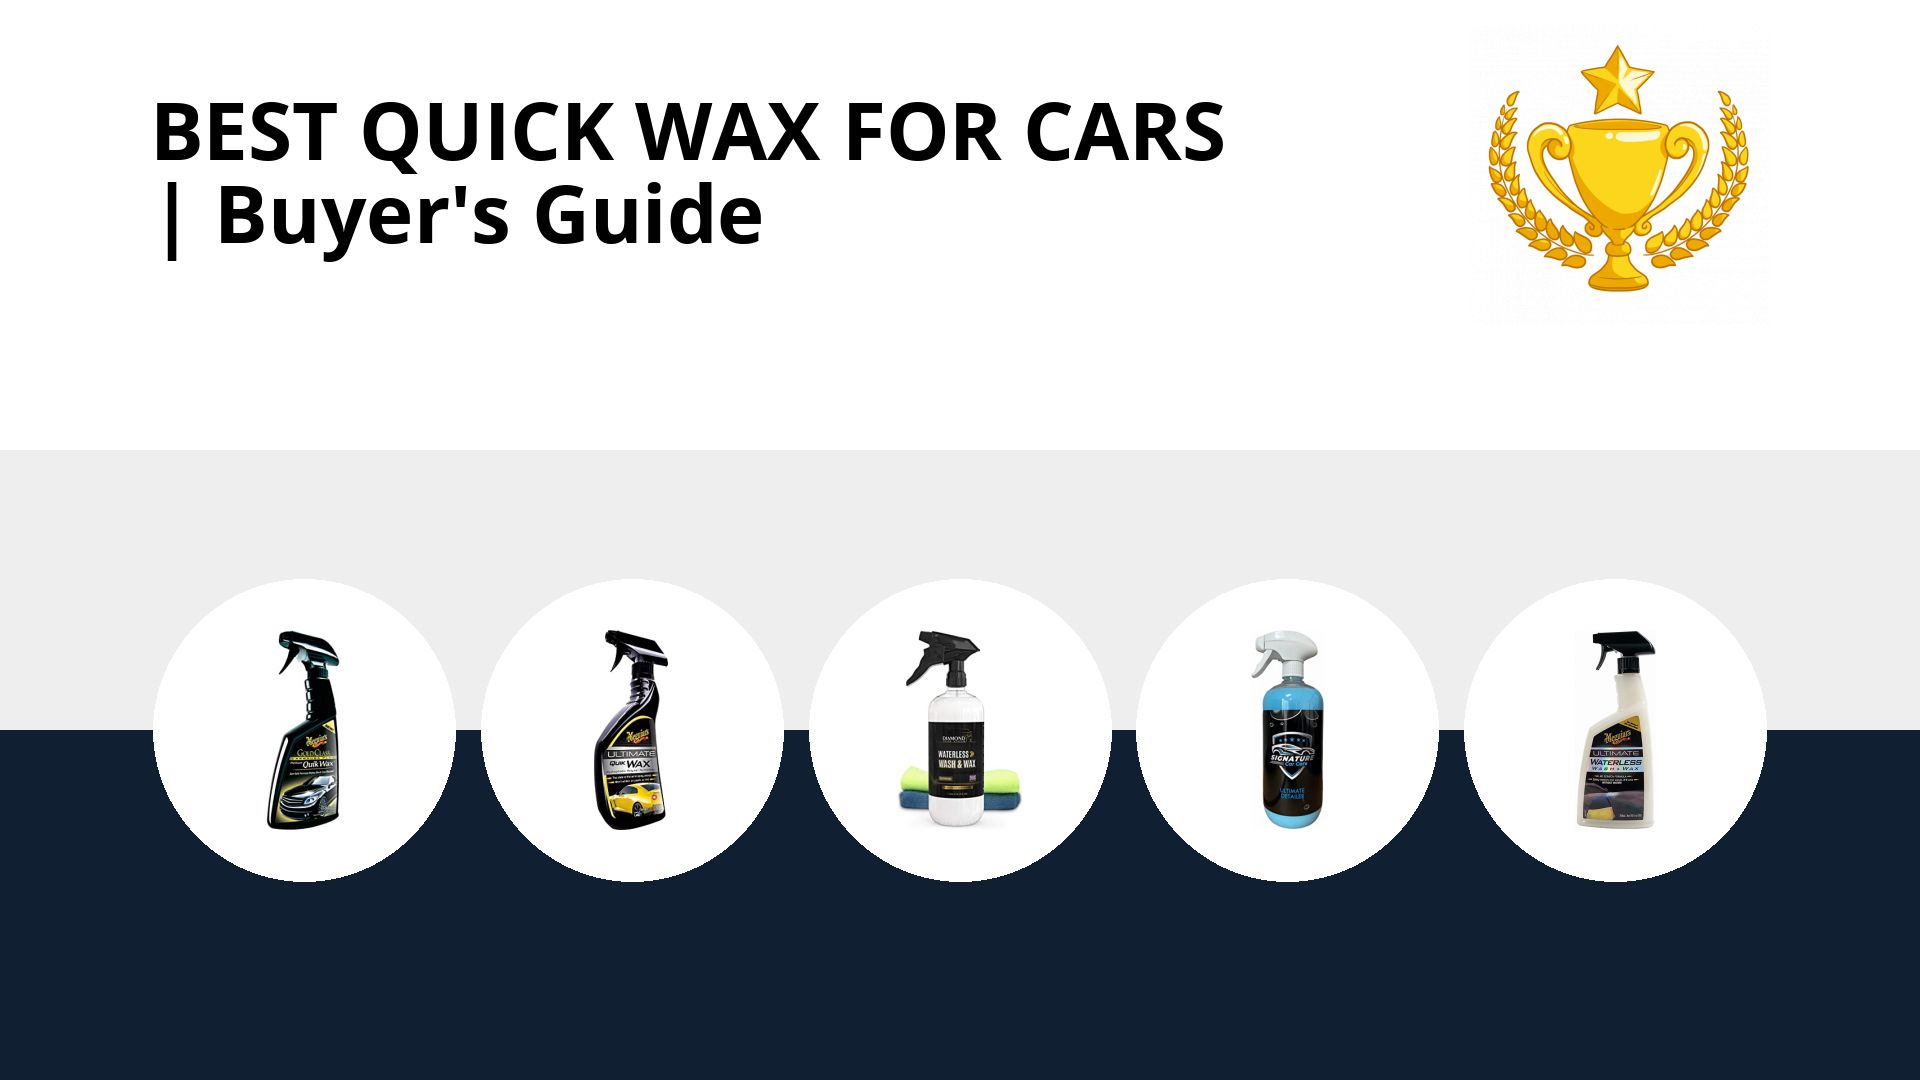 Best Quick Wax For Cars: image